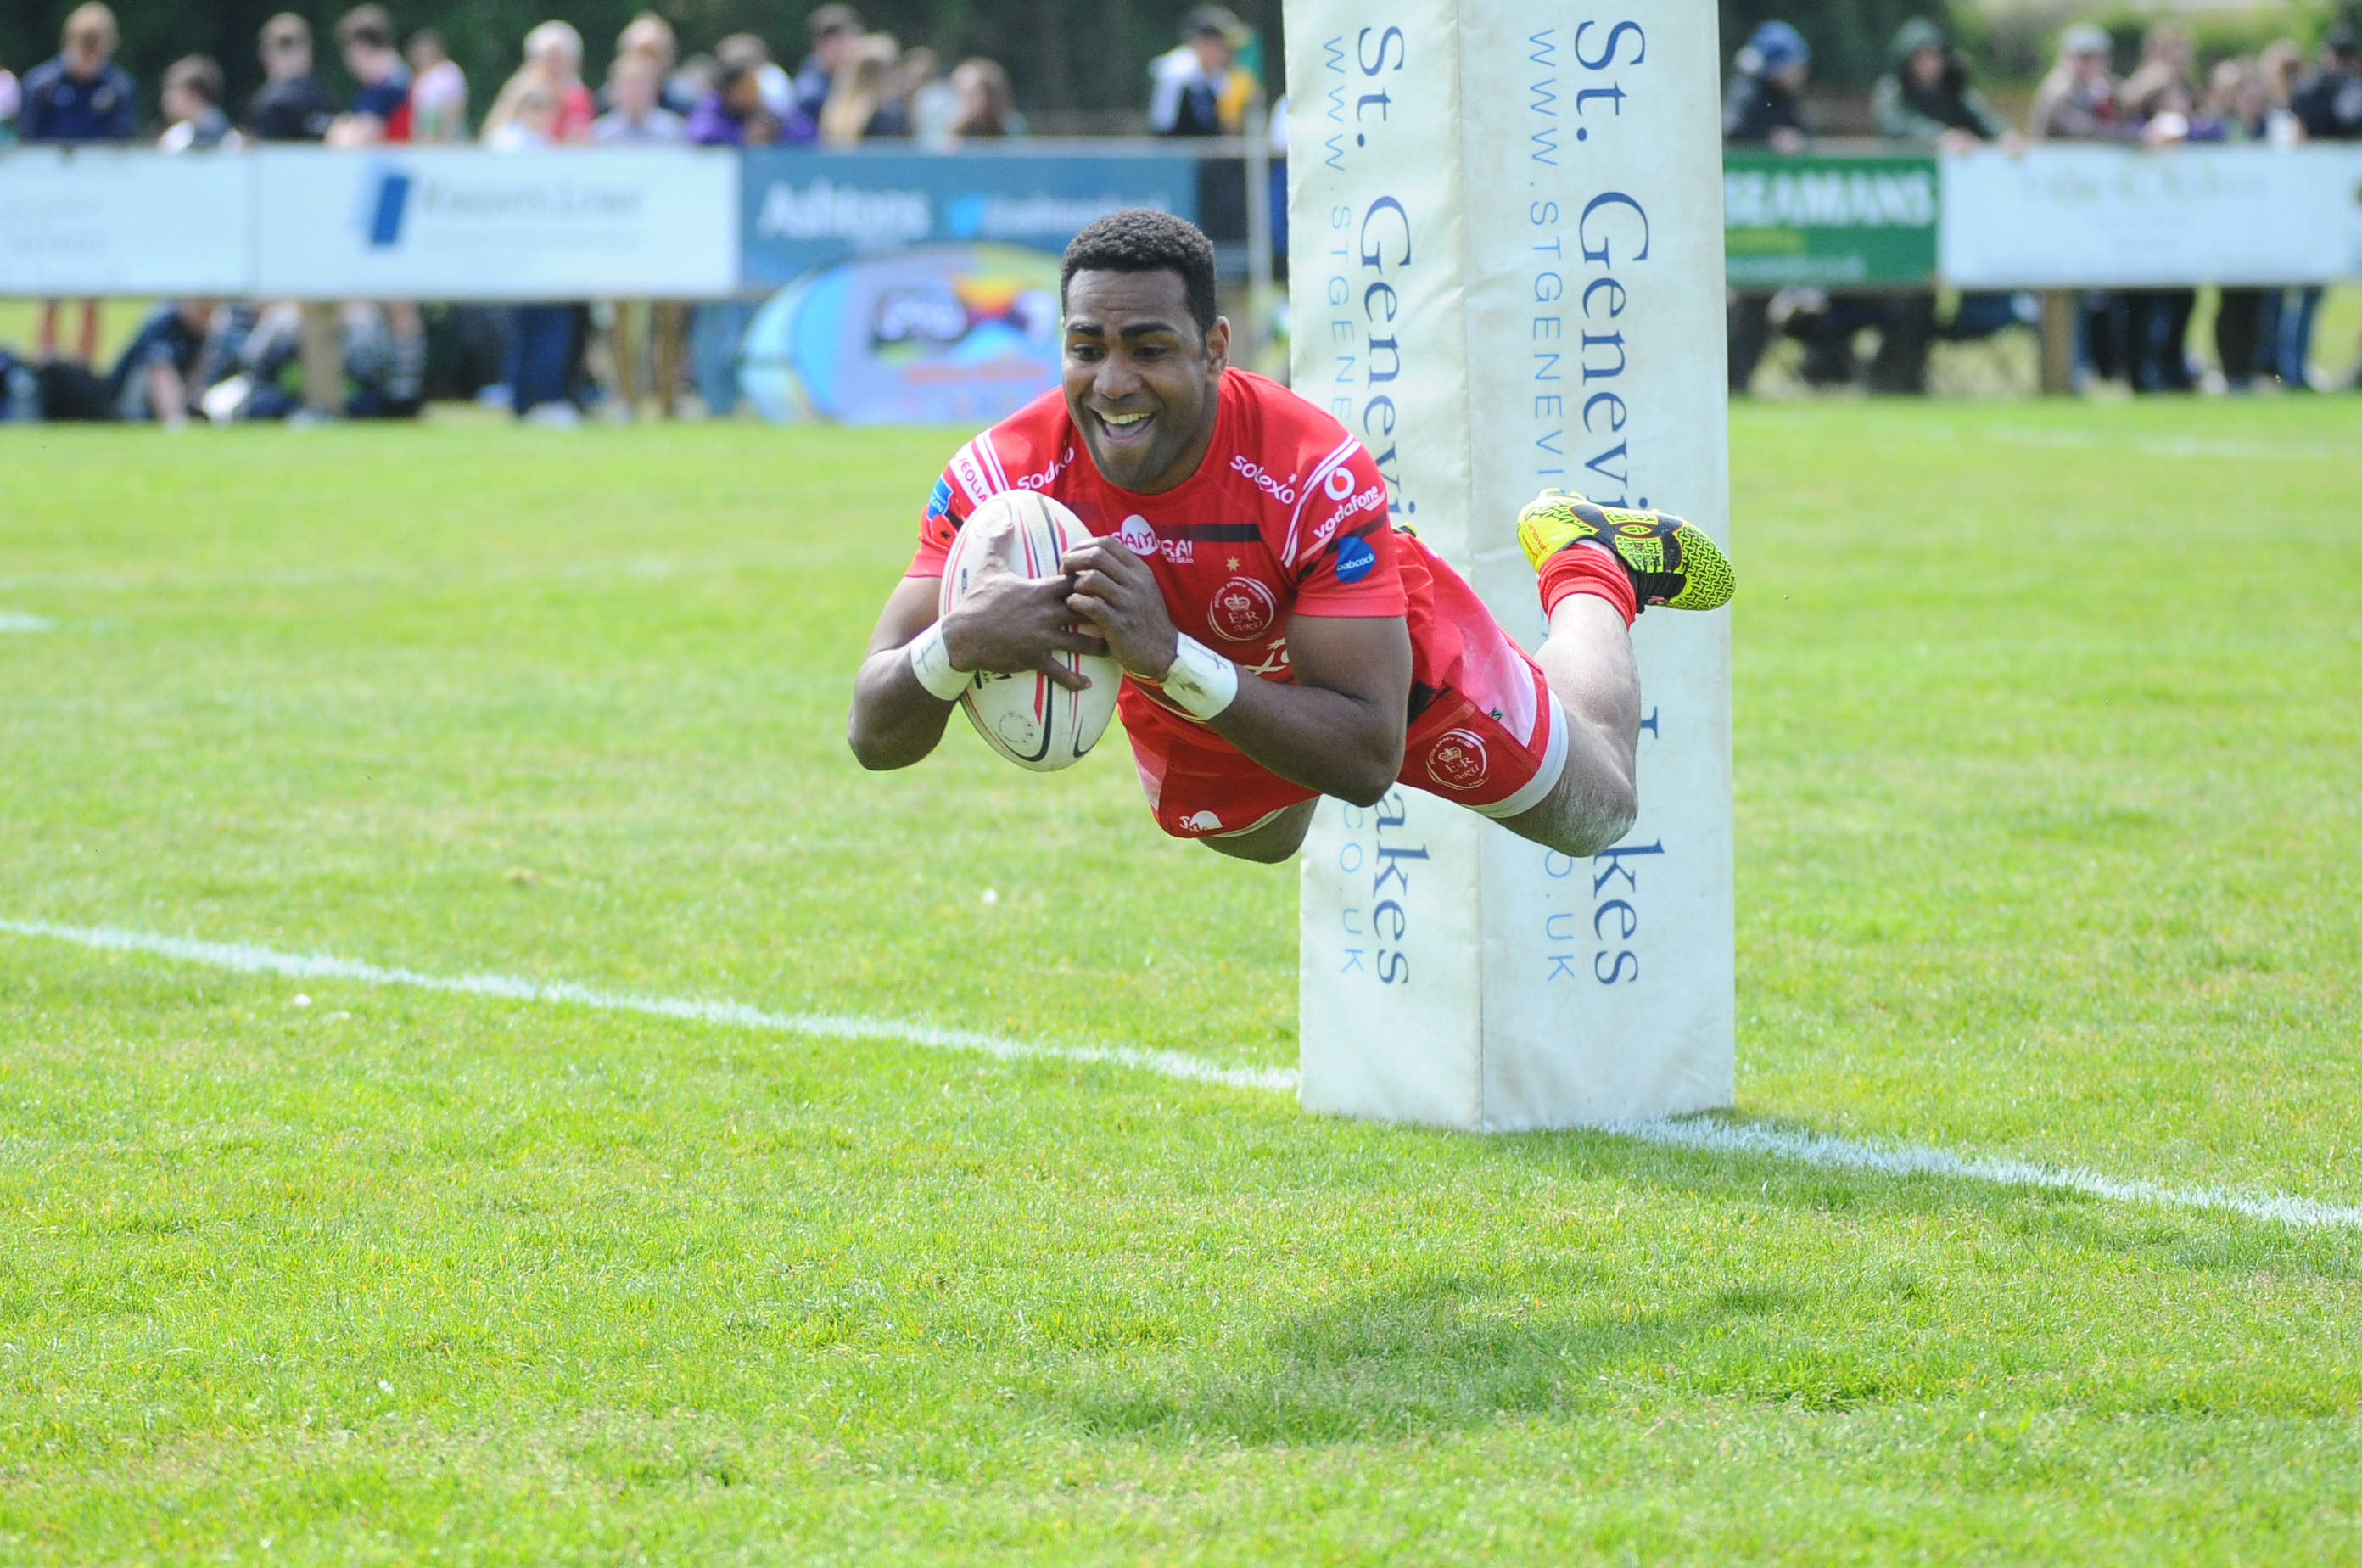 Army 7s burn it up at Bury Supper Sevens Series